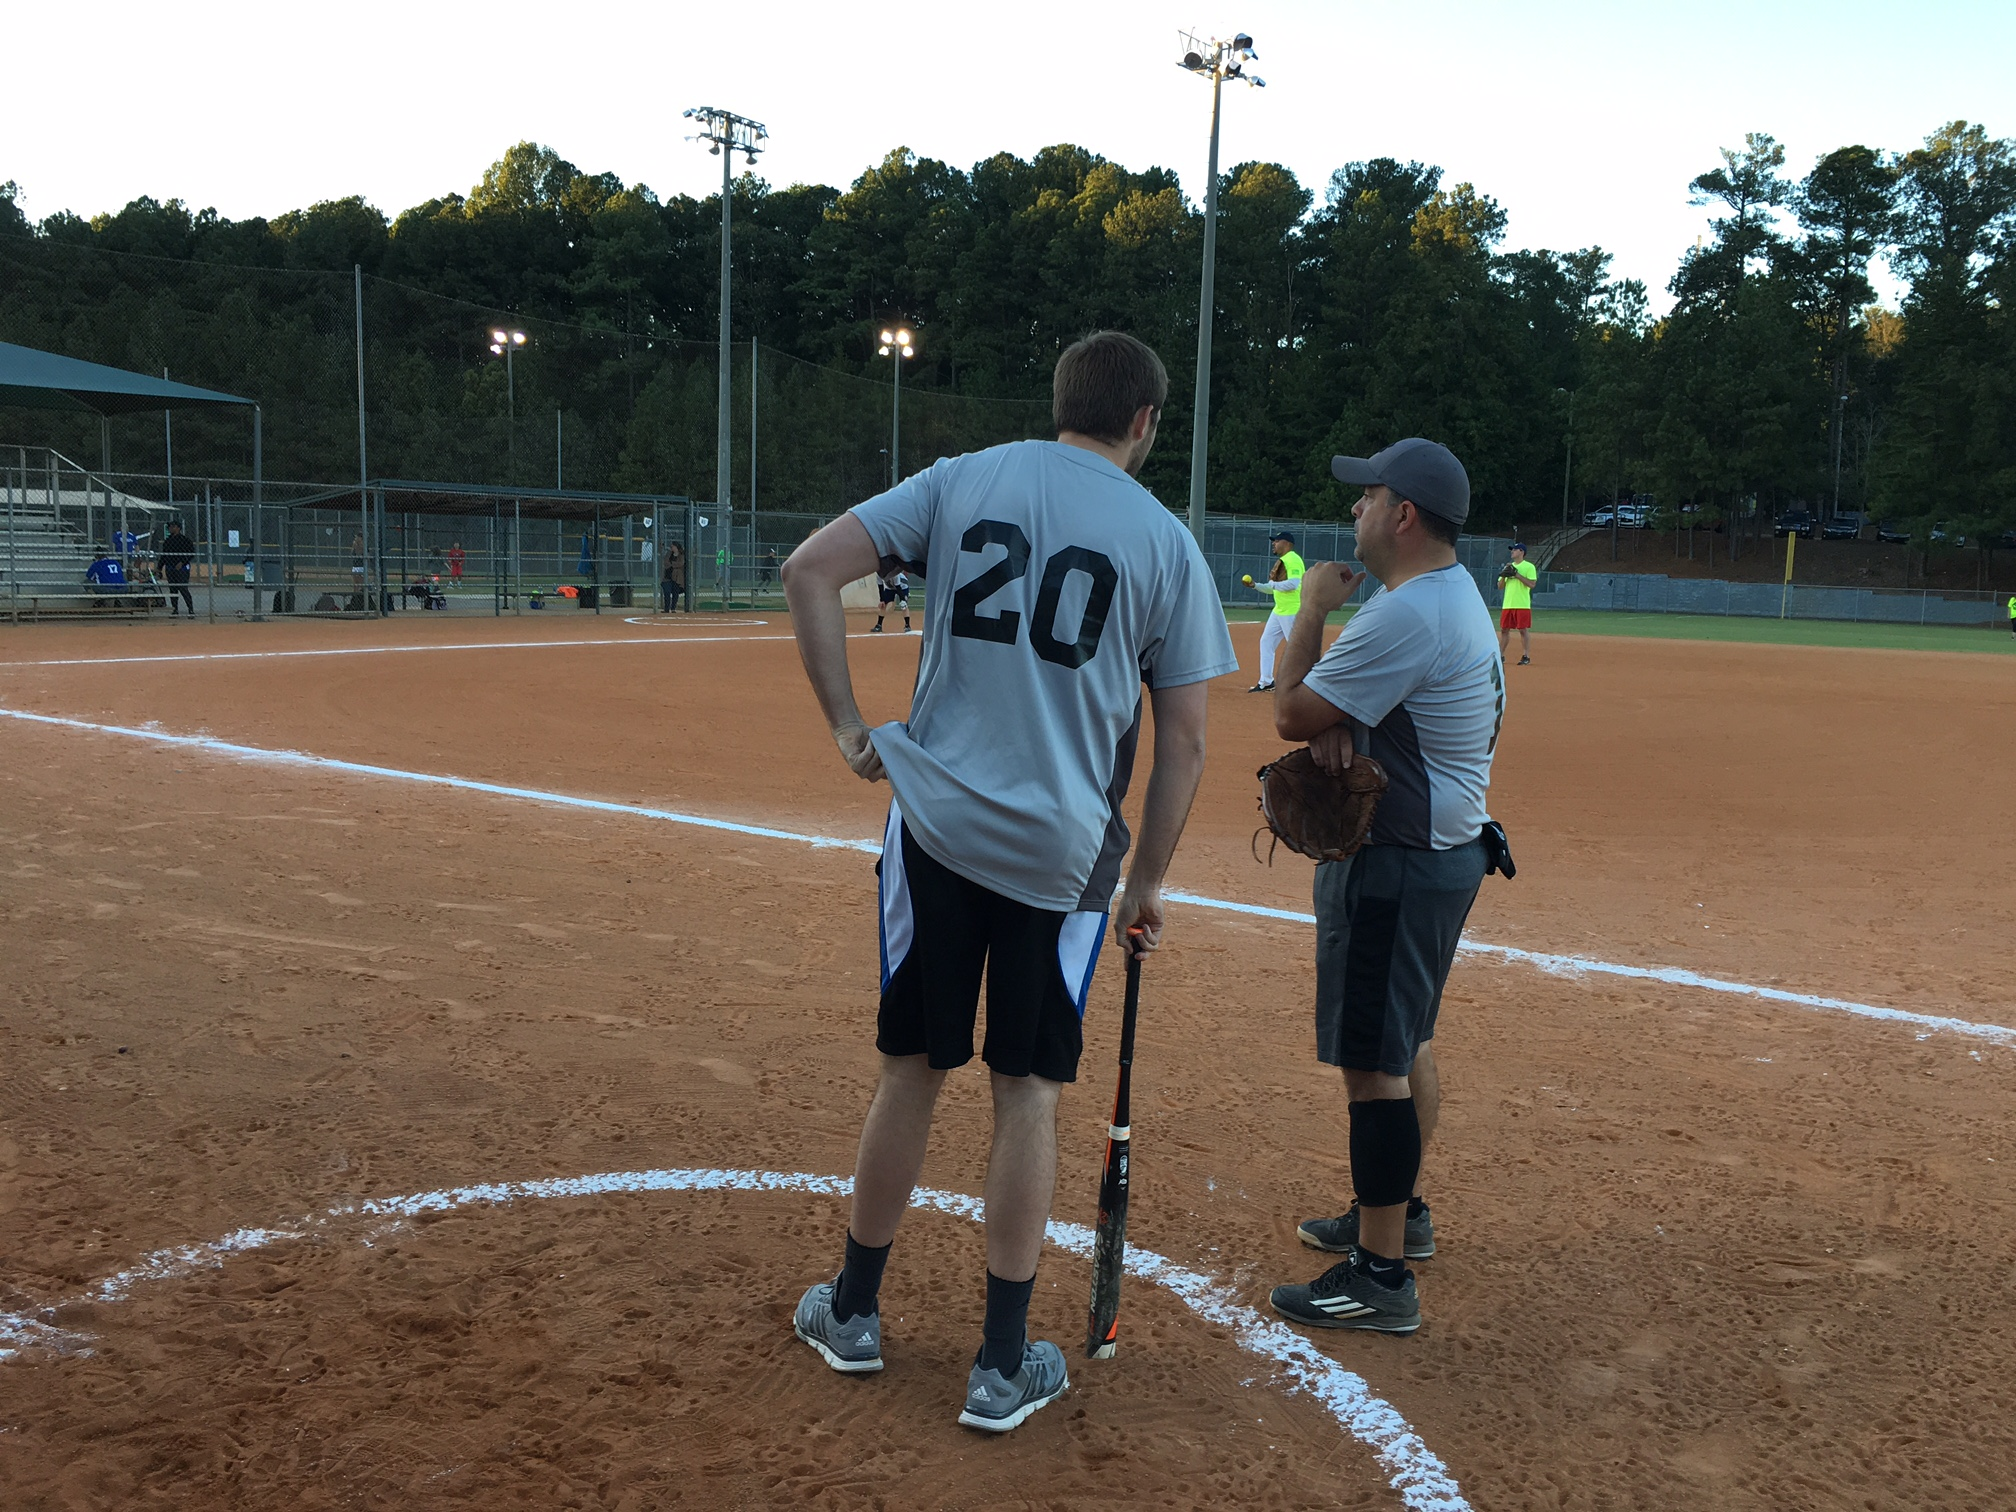 Batter up for the 2018 fall Adult Co-Ed Softball Season